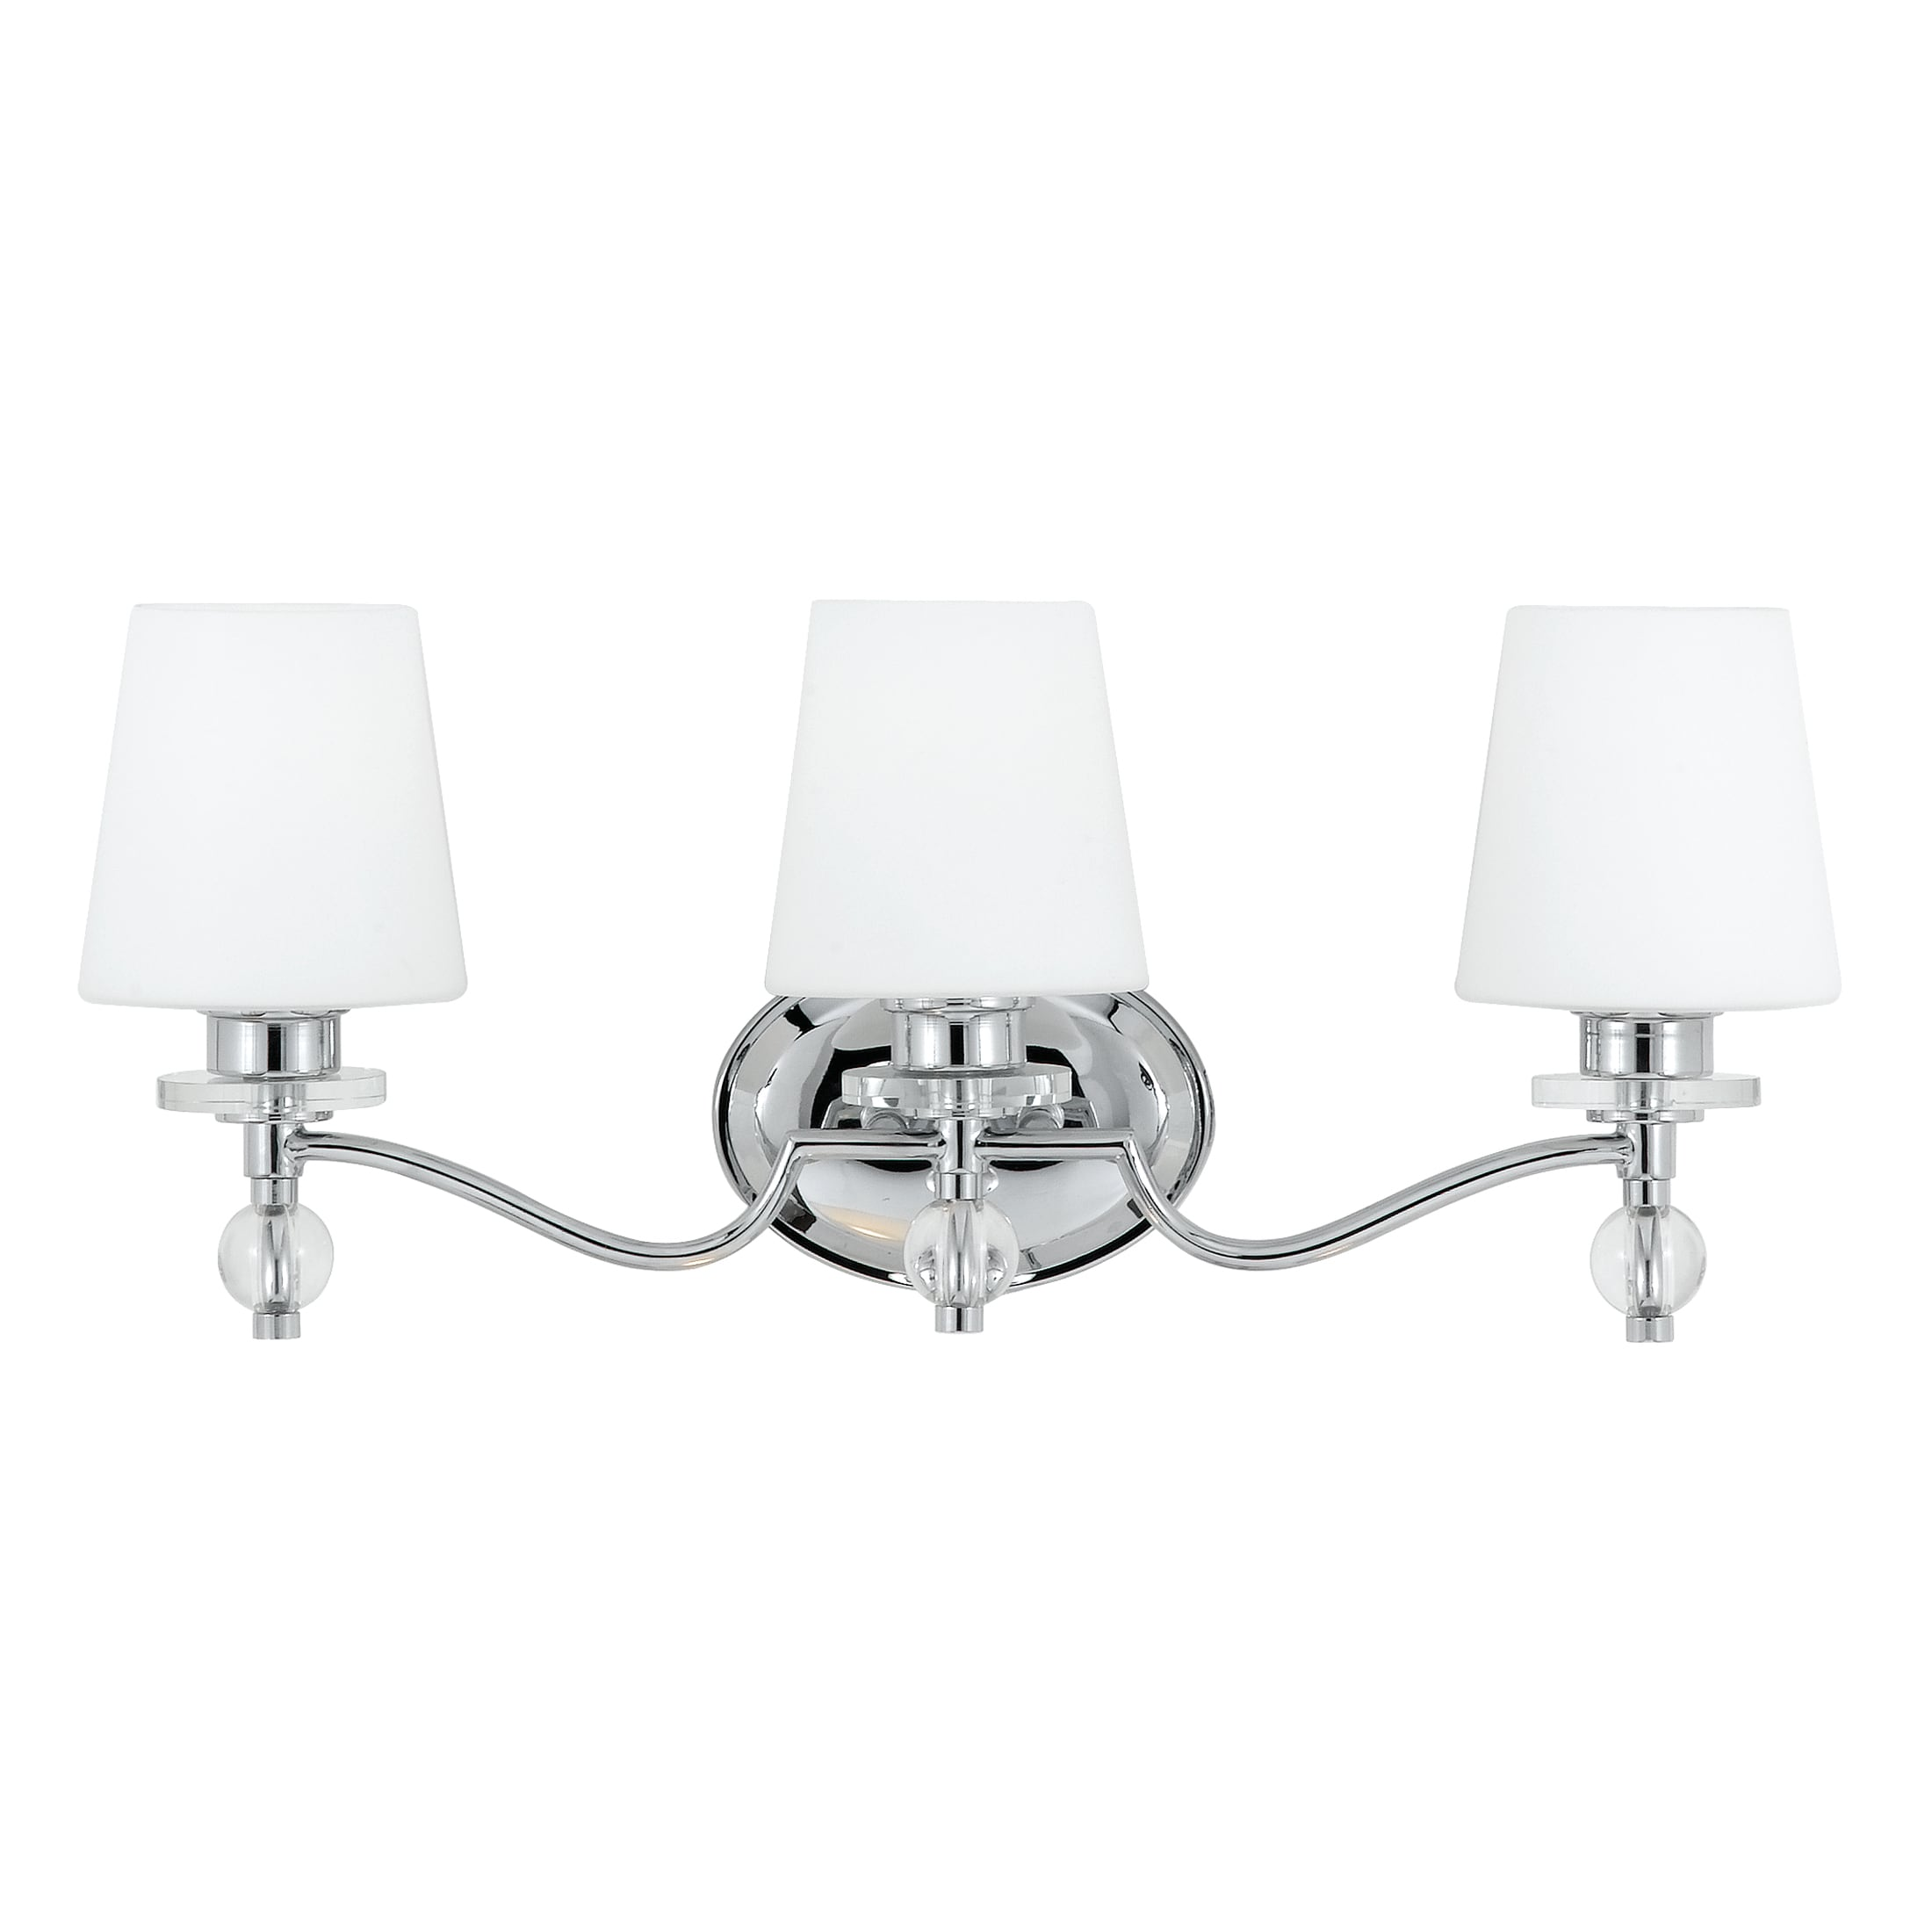 Quoizel 'Hollister' Three-light Bath Fixture